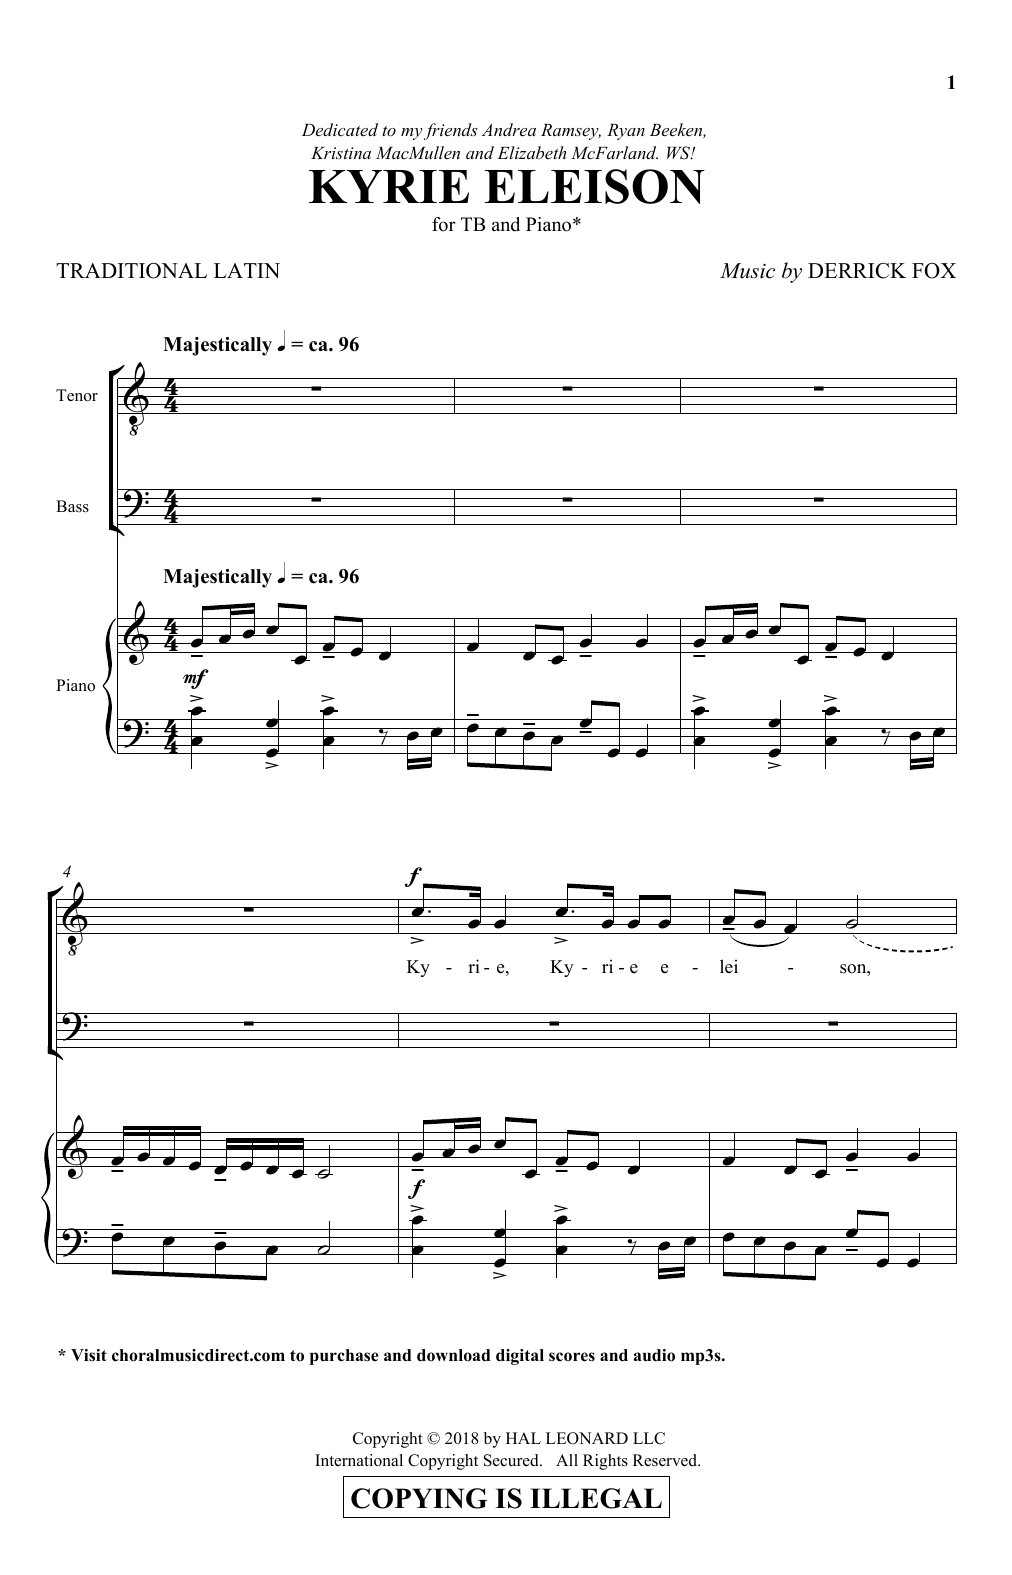 Kyrie Eleison Sheet Music